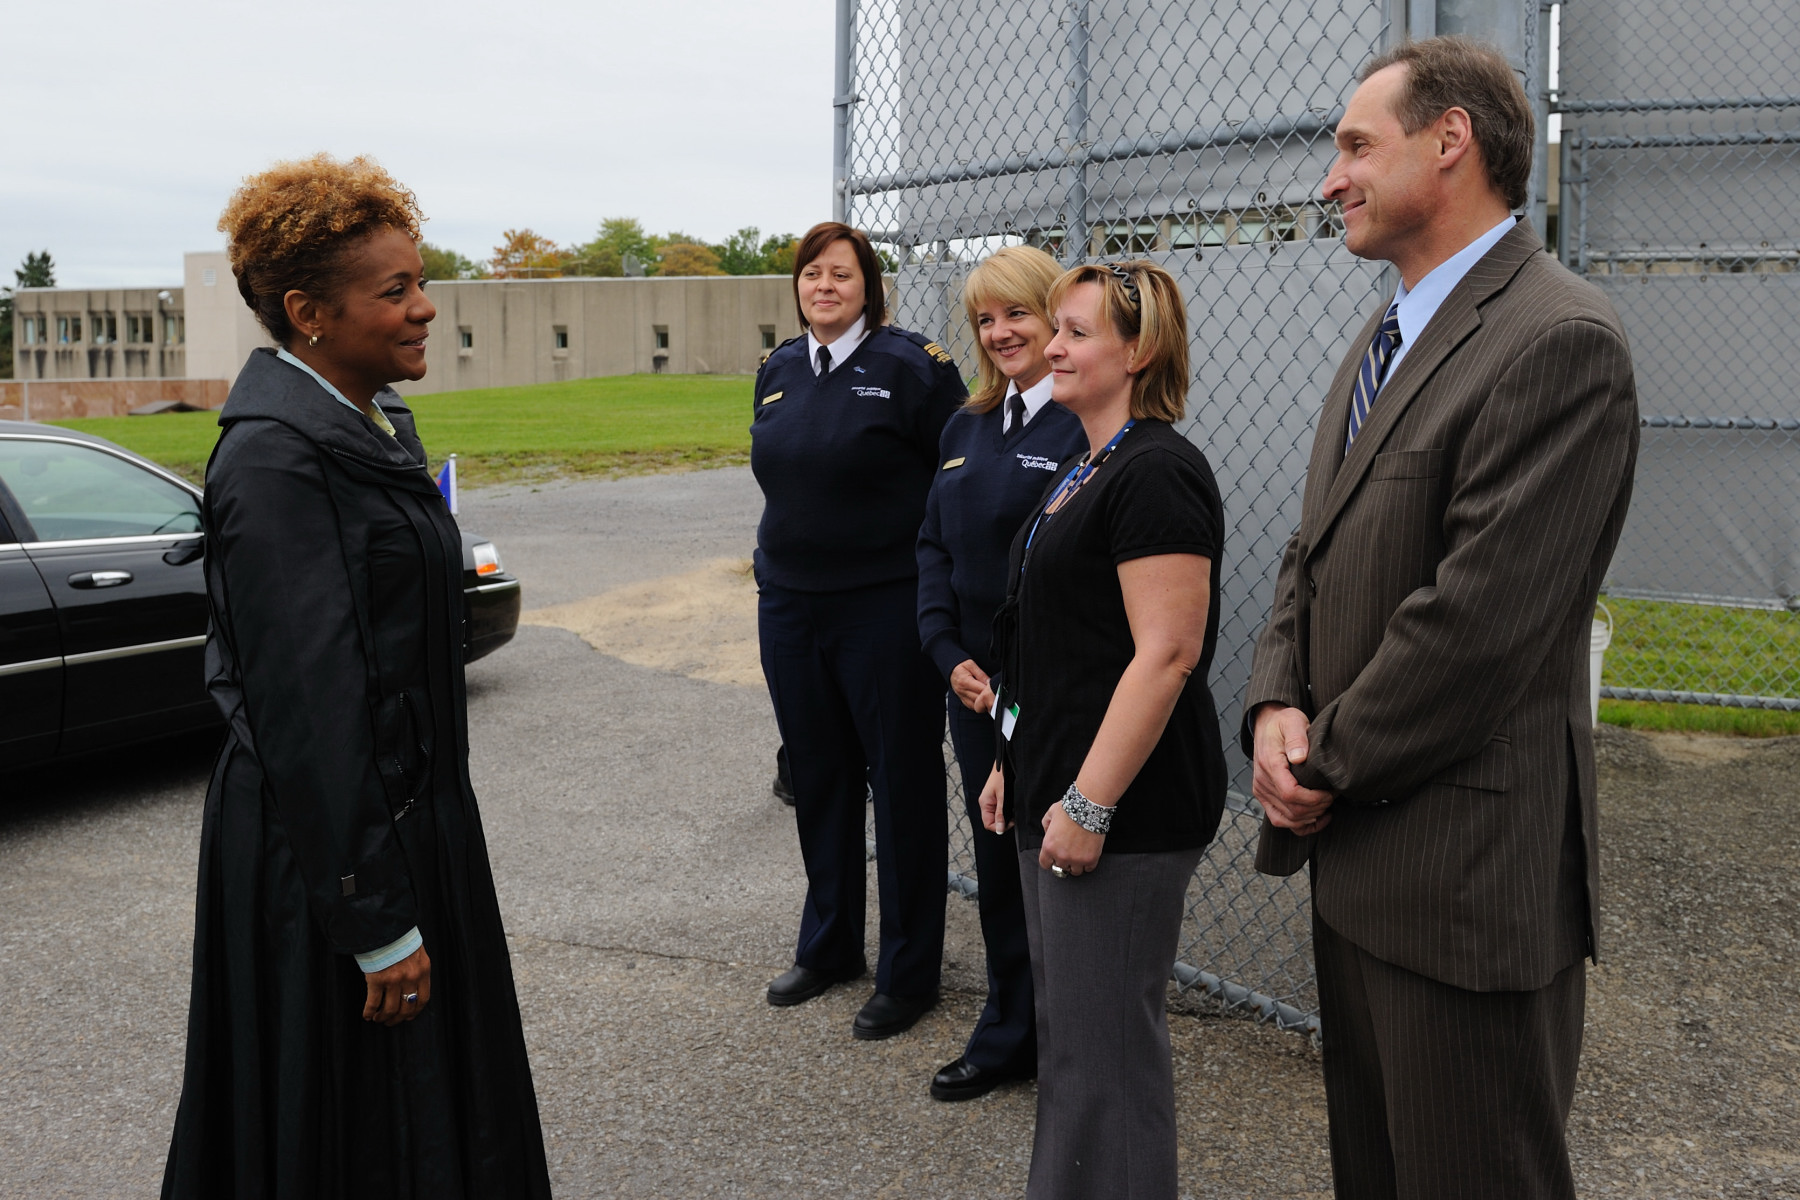 Her Excellency the Right Honourable Michaëlle Jean, Governor General of Canada, visited the Établissement de détention de Québec, previously known as the Orsainville prison